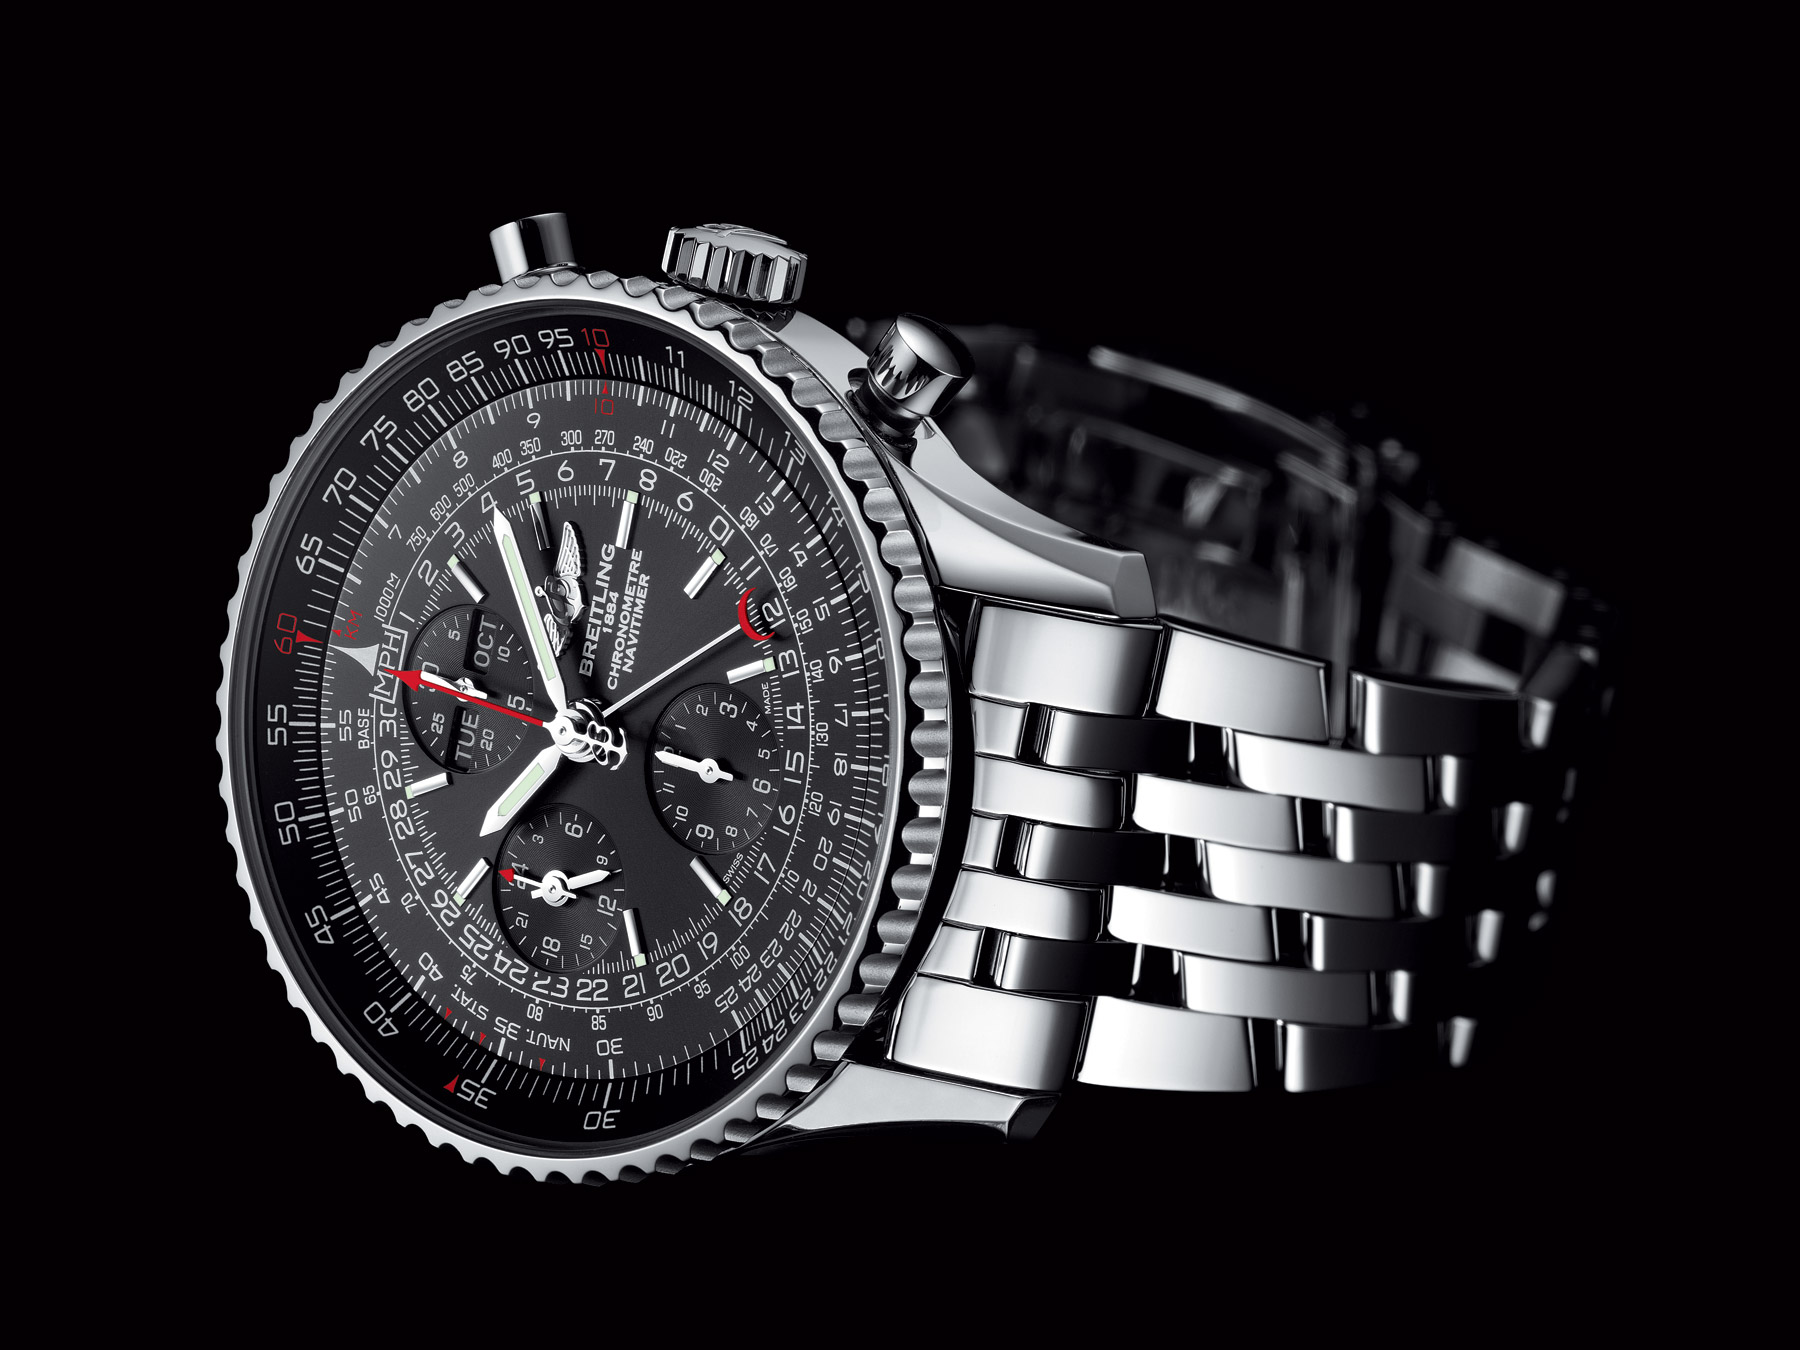 The Breitling Navitimer 1884 – A milestone Chronograph